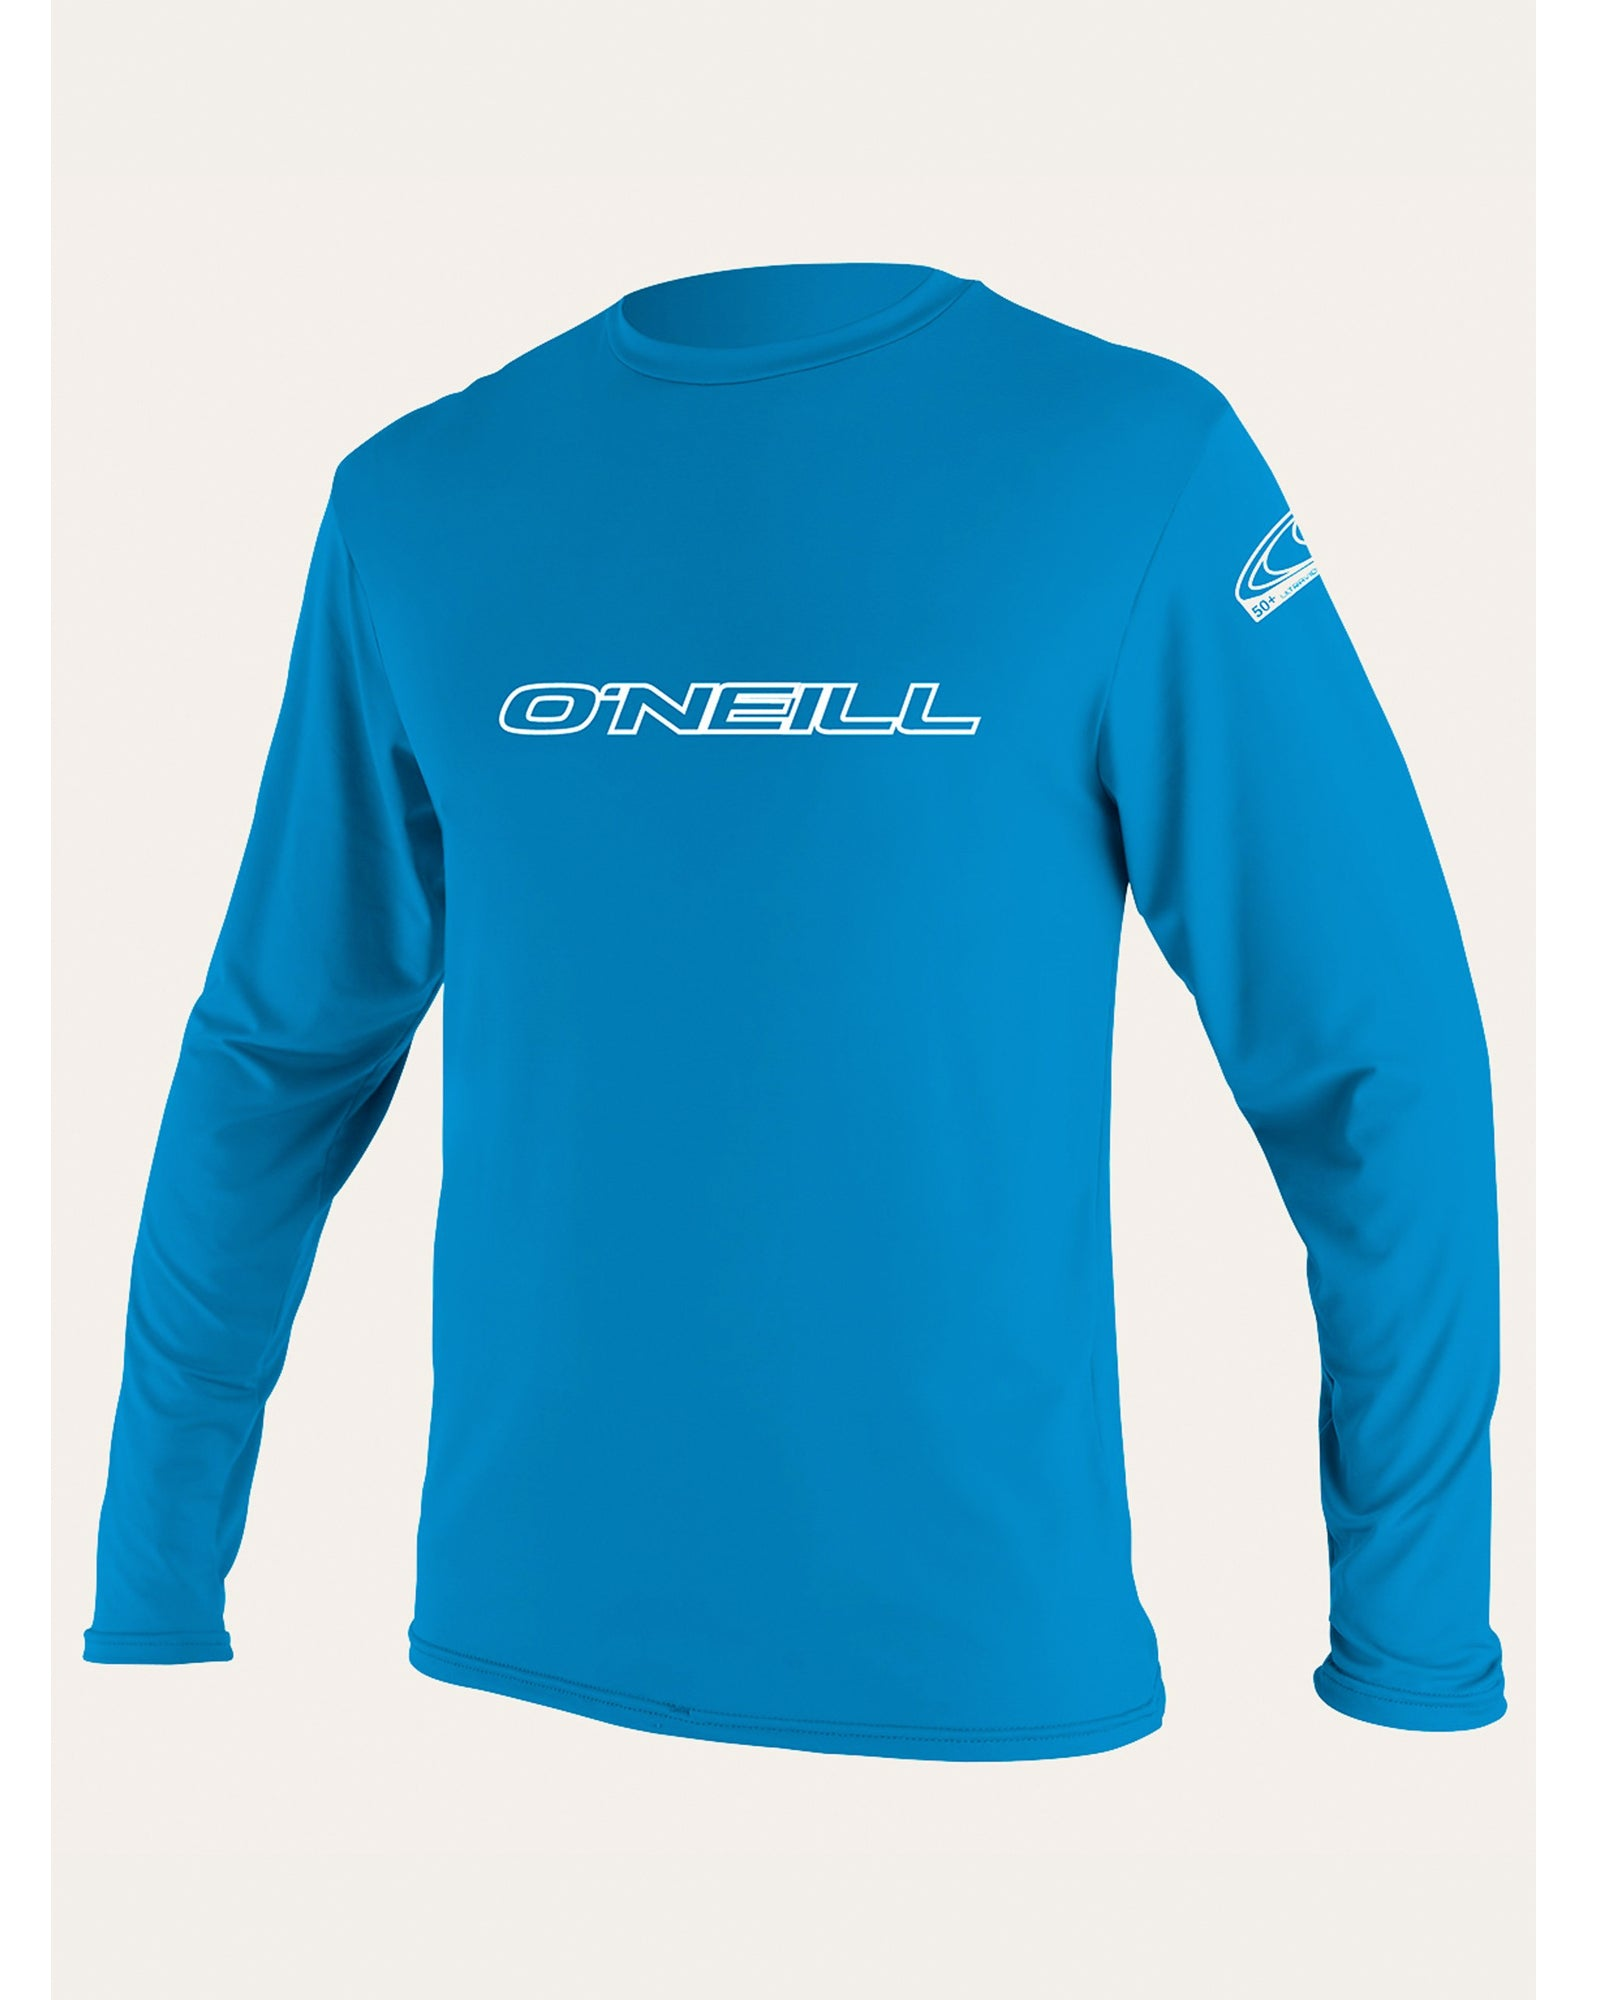 O'Neill Basic Skins Youth Girl's L/S Rashguard